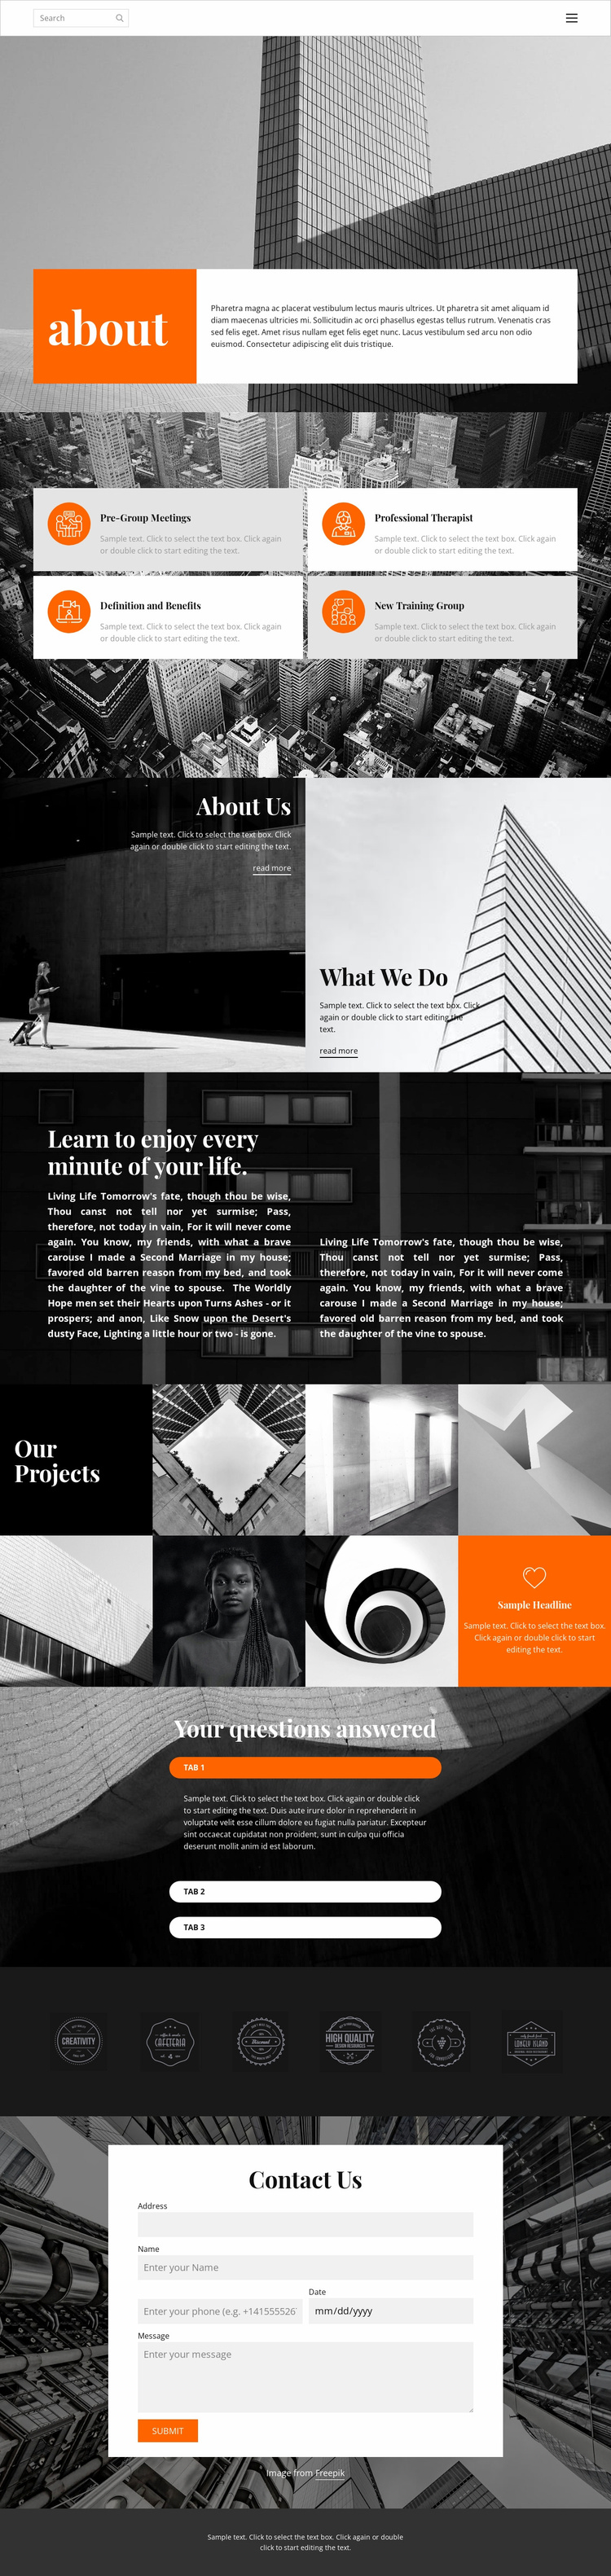 New projects studio Website Template